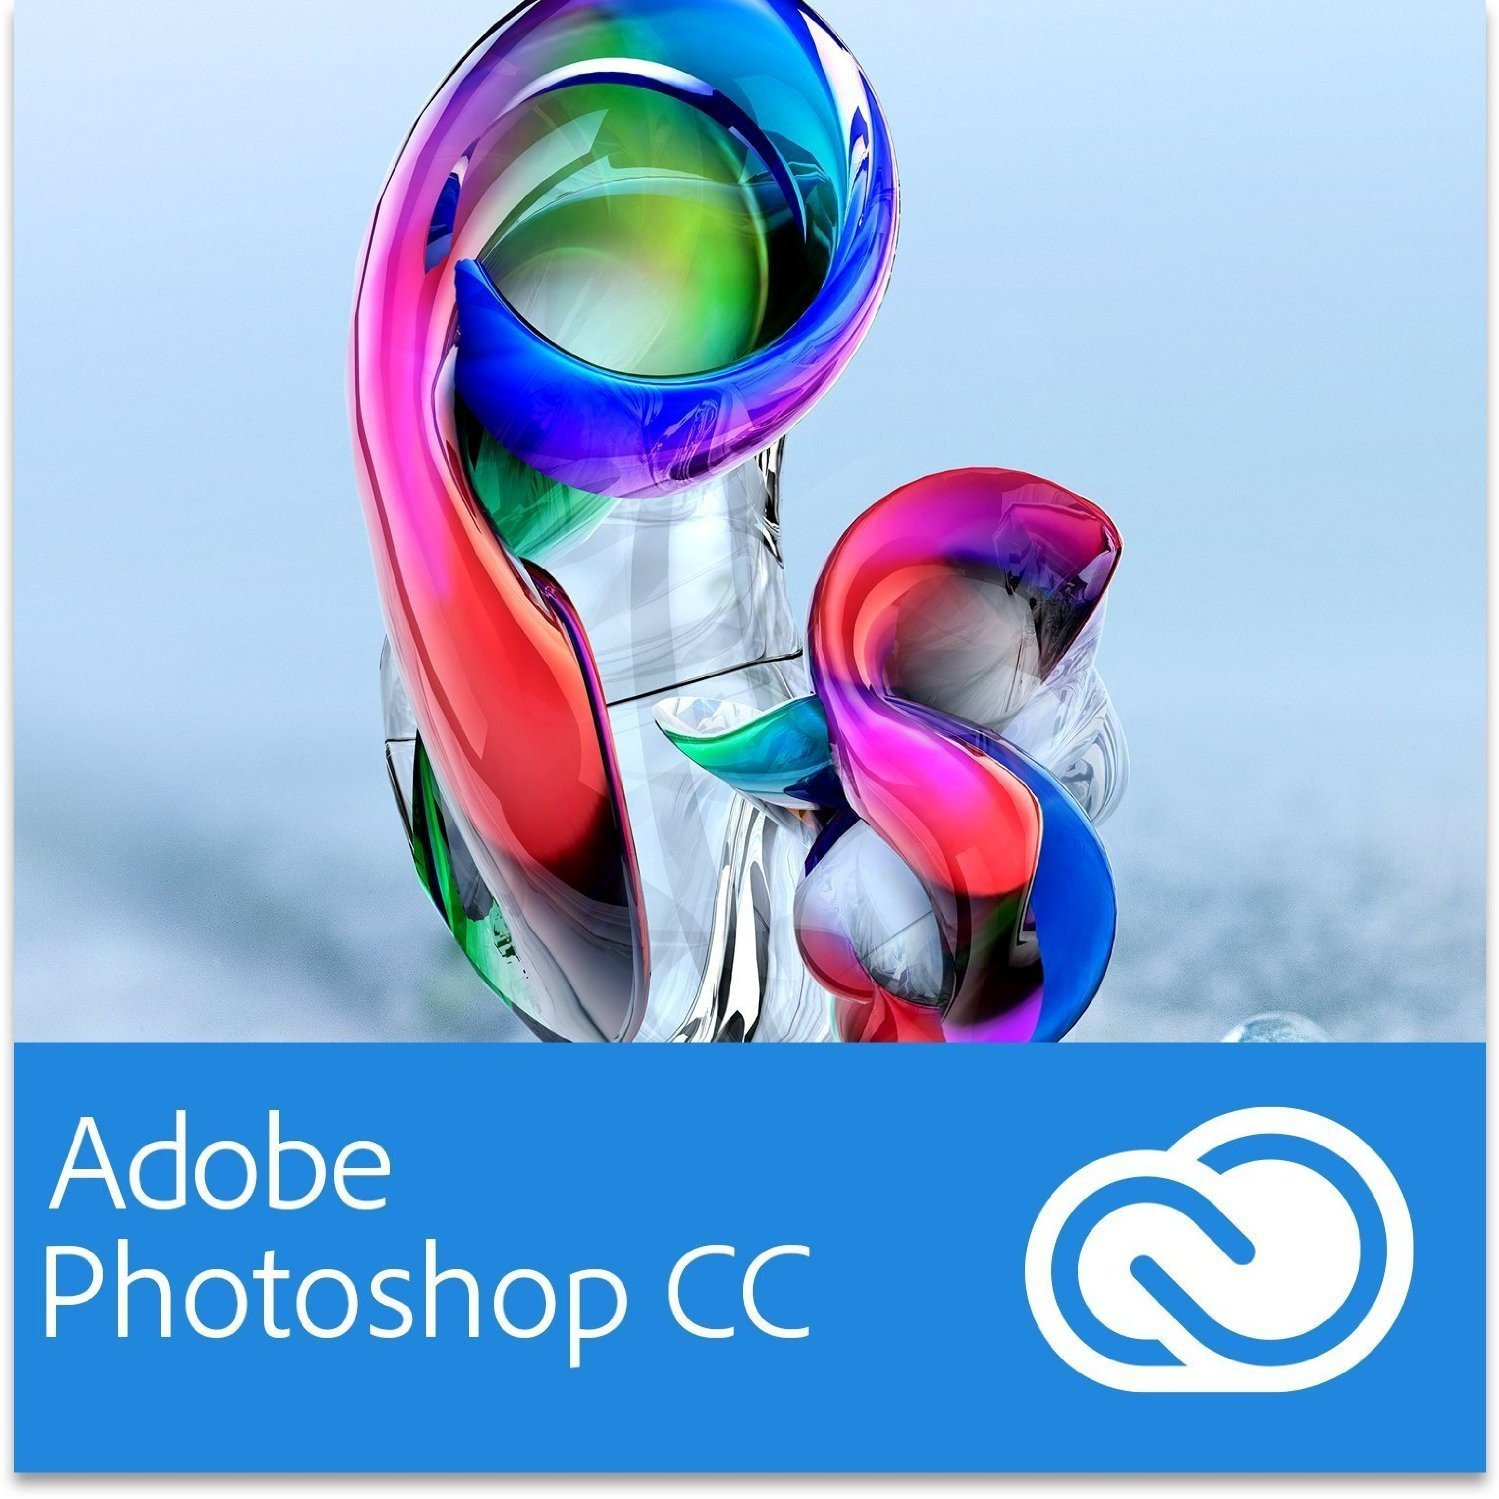 Adobe Photoshop CC Crack PC